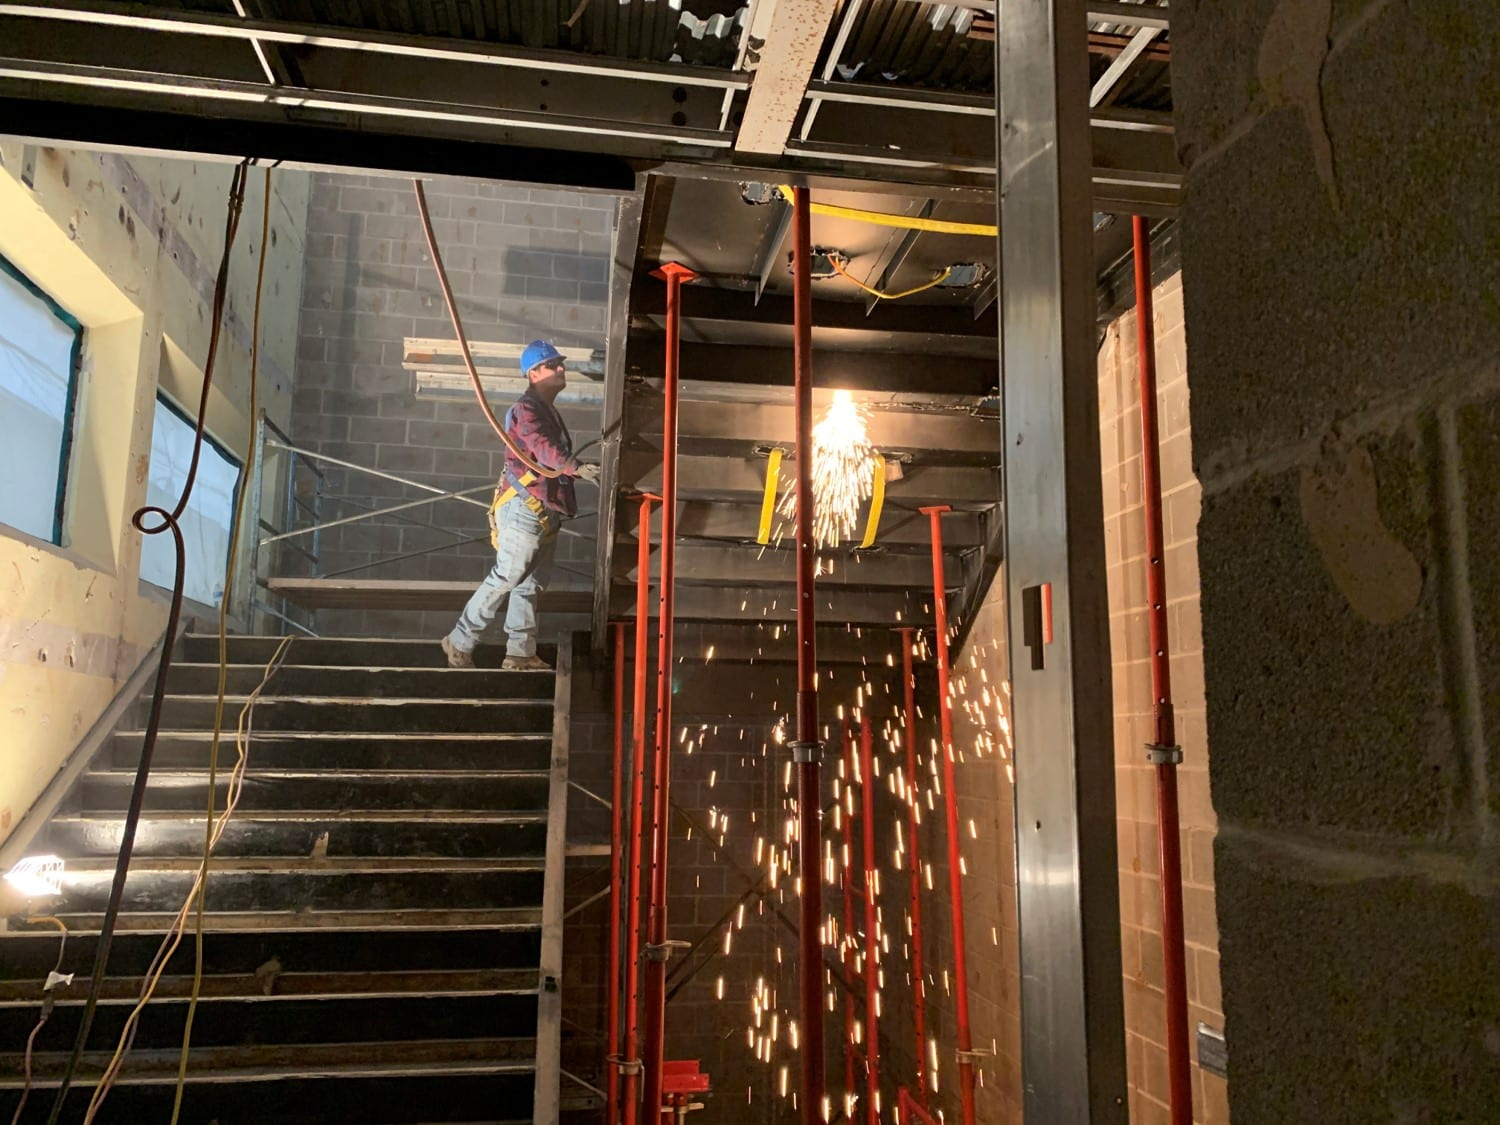 At the left, a worker in a blue hardhat stands on a staircase. A shower of sparks rains down from the next flight of stairs on the right.